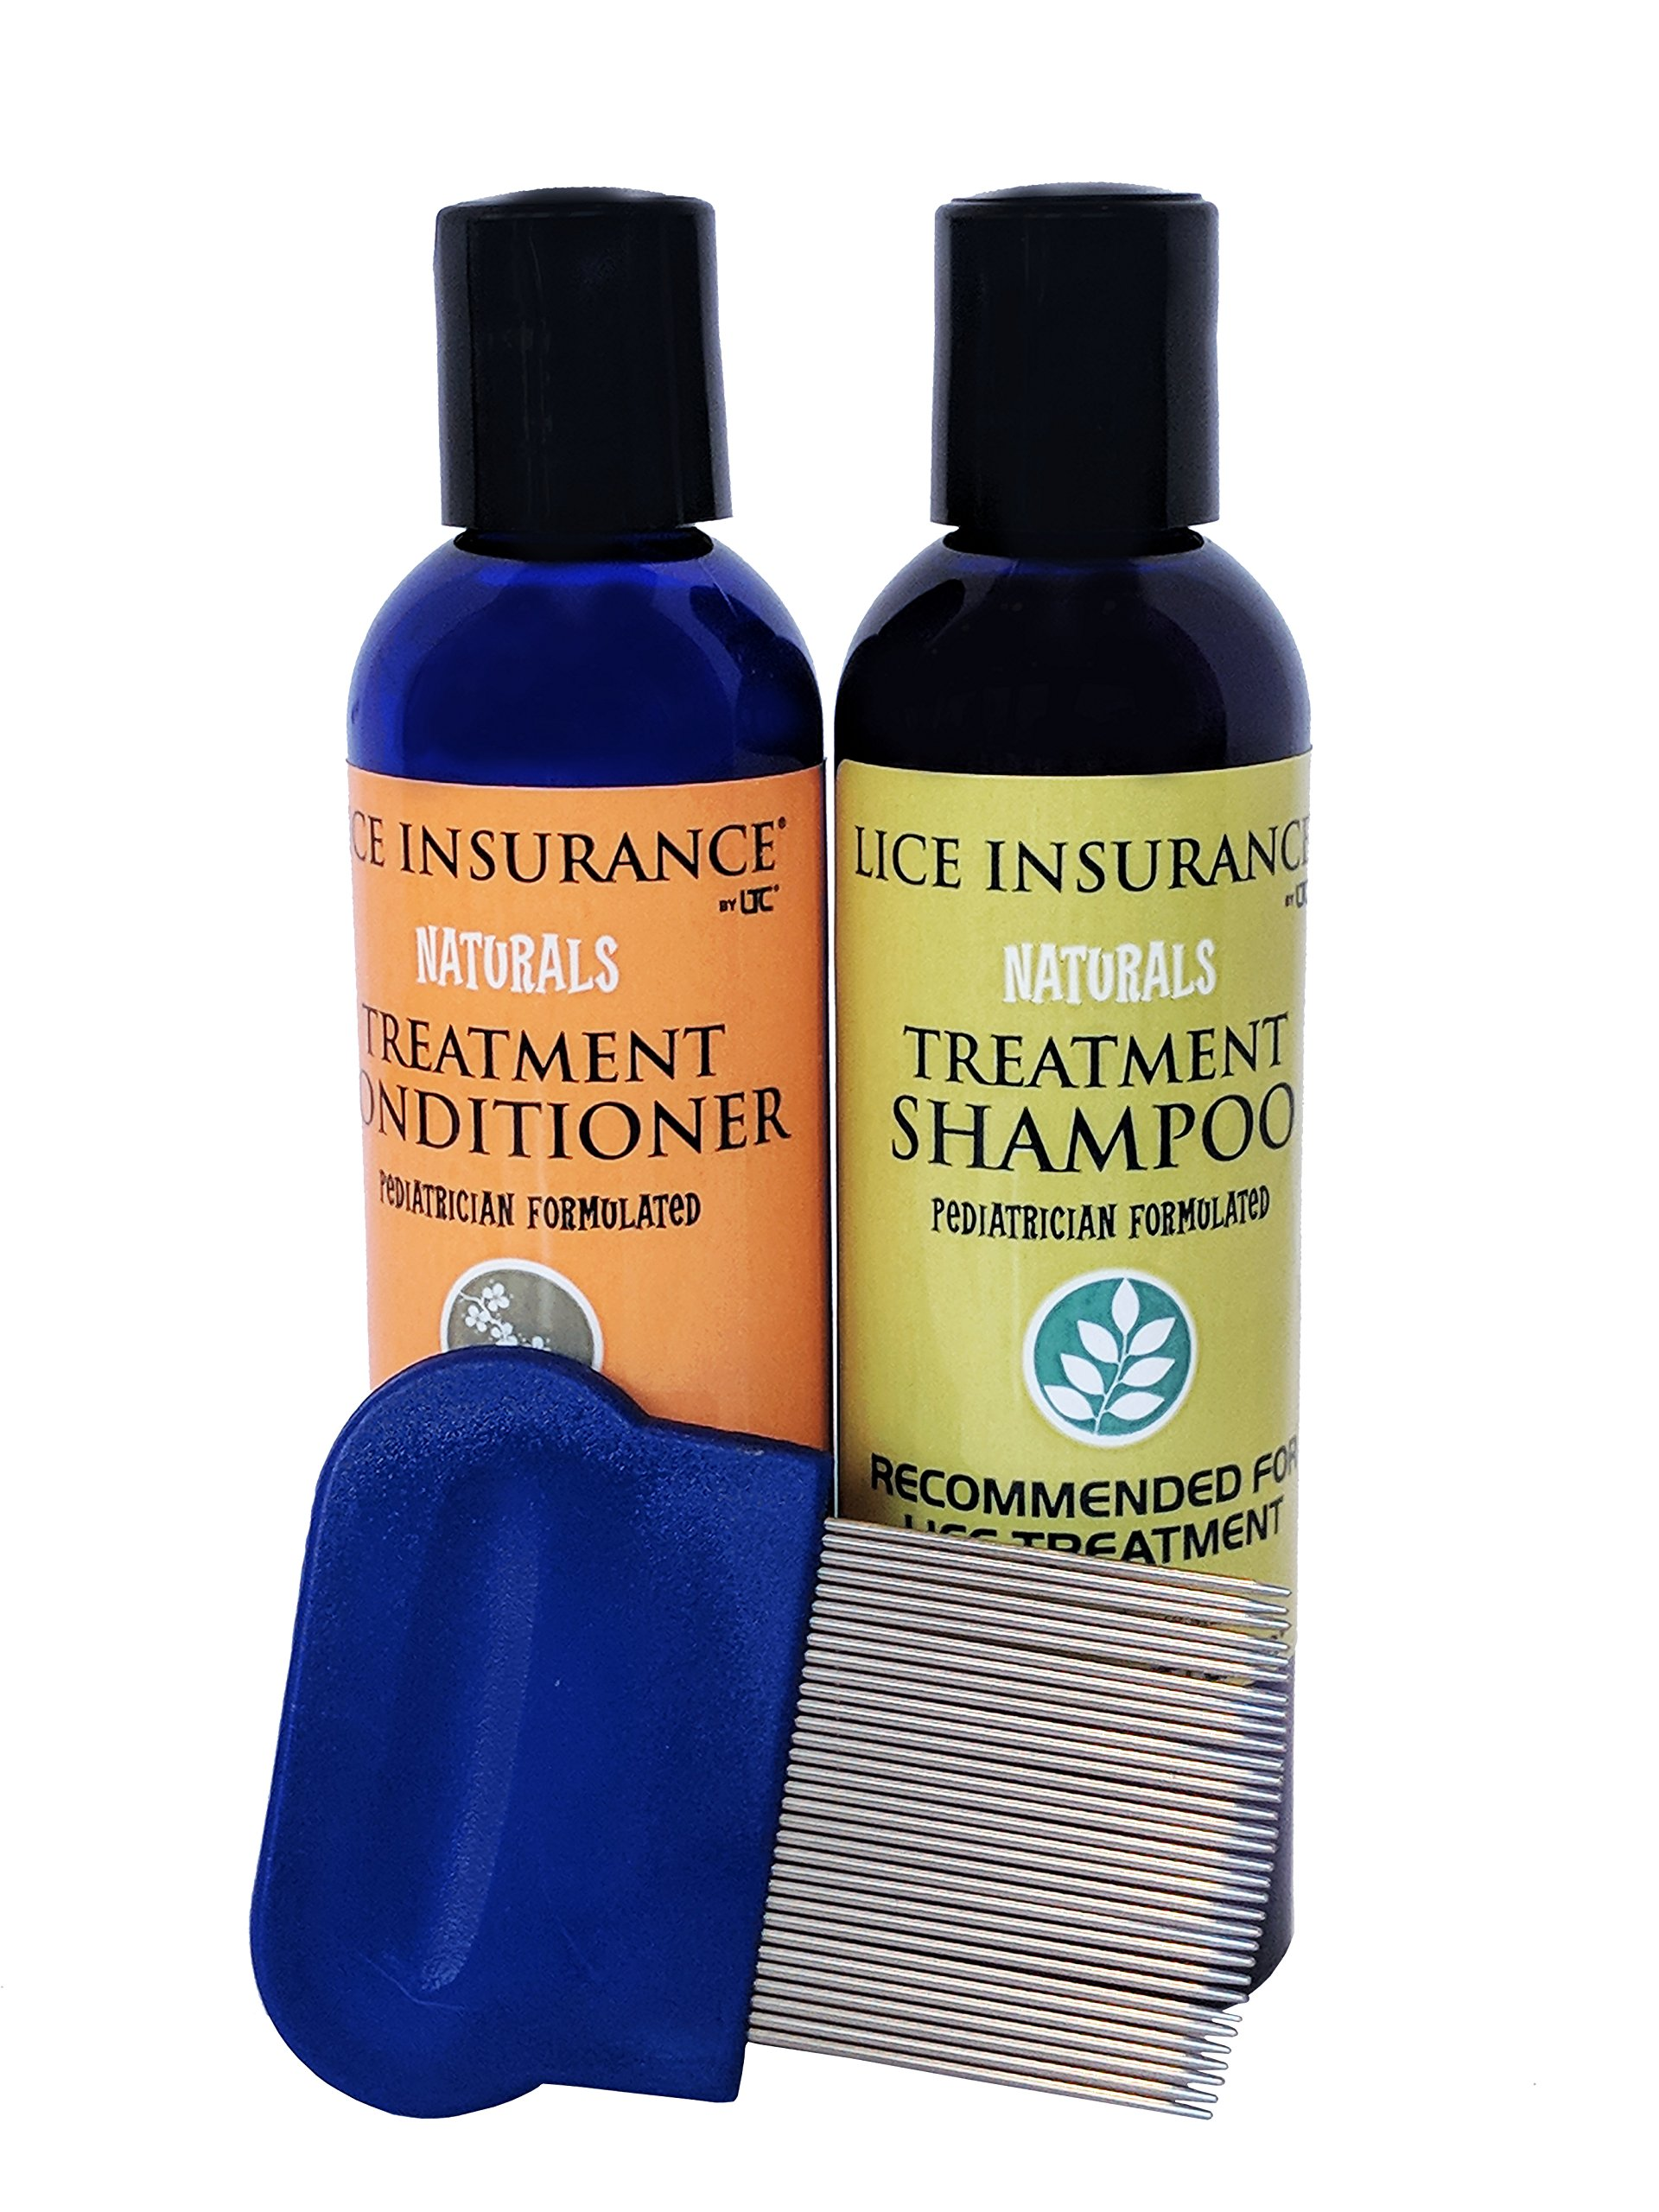 Lice Treatment Center - Lice Insurance - All Natural, Professional Lice Treatment Kit - Lice Shampoo (4oz) and Lice Conditioner (4oz) and Stainless Steel Lice Comb